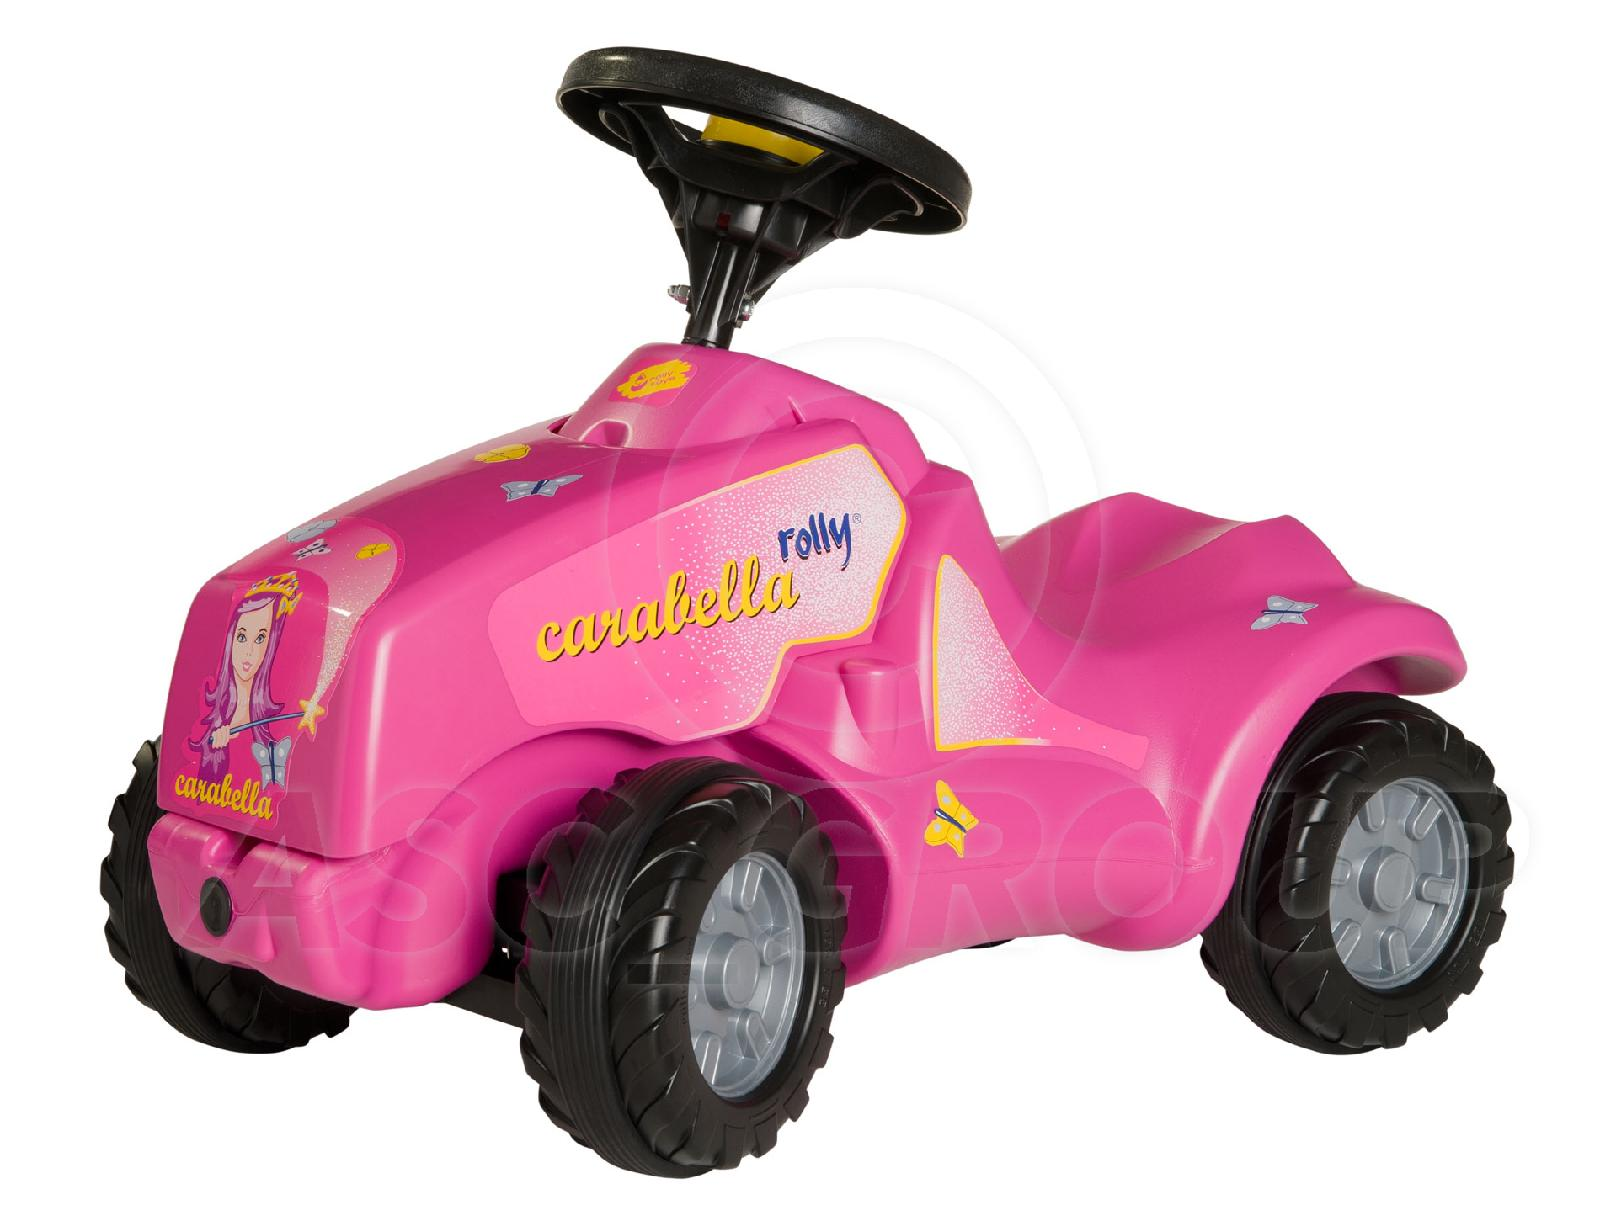 Toys For Girls Age 1 2 : Rolly toys princess carabella ride on pink girls